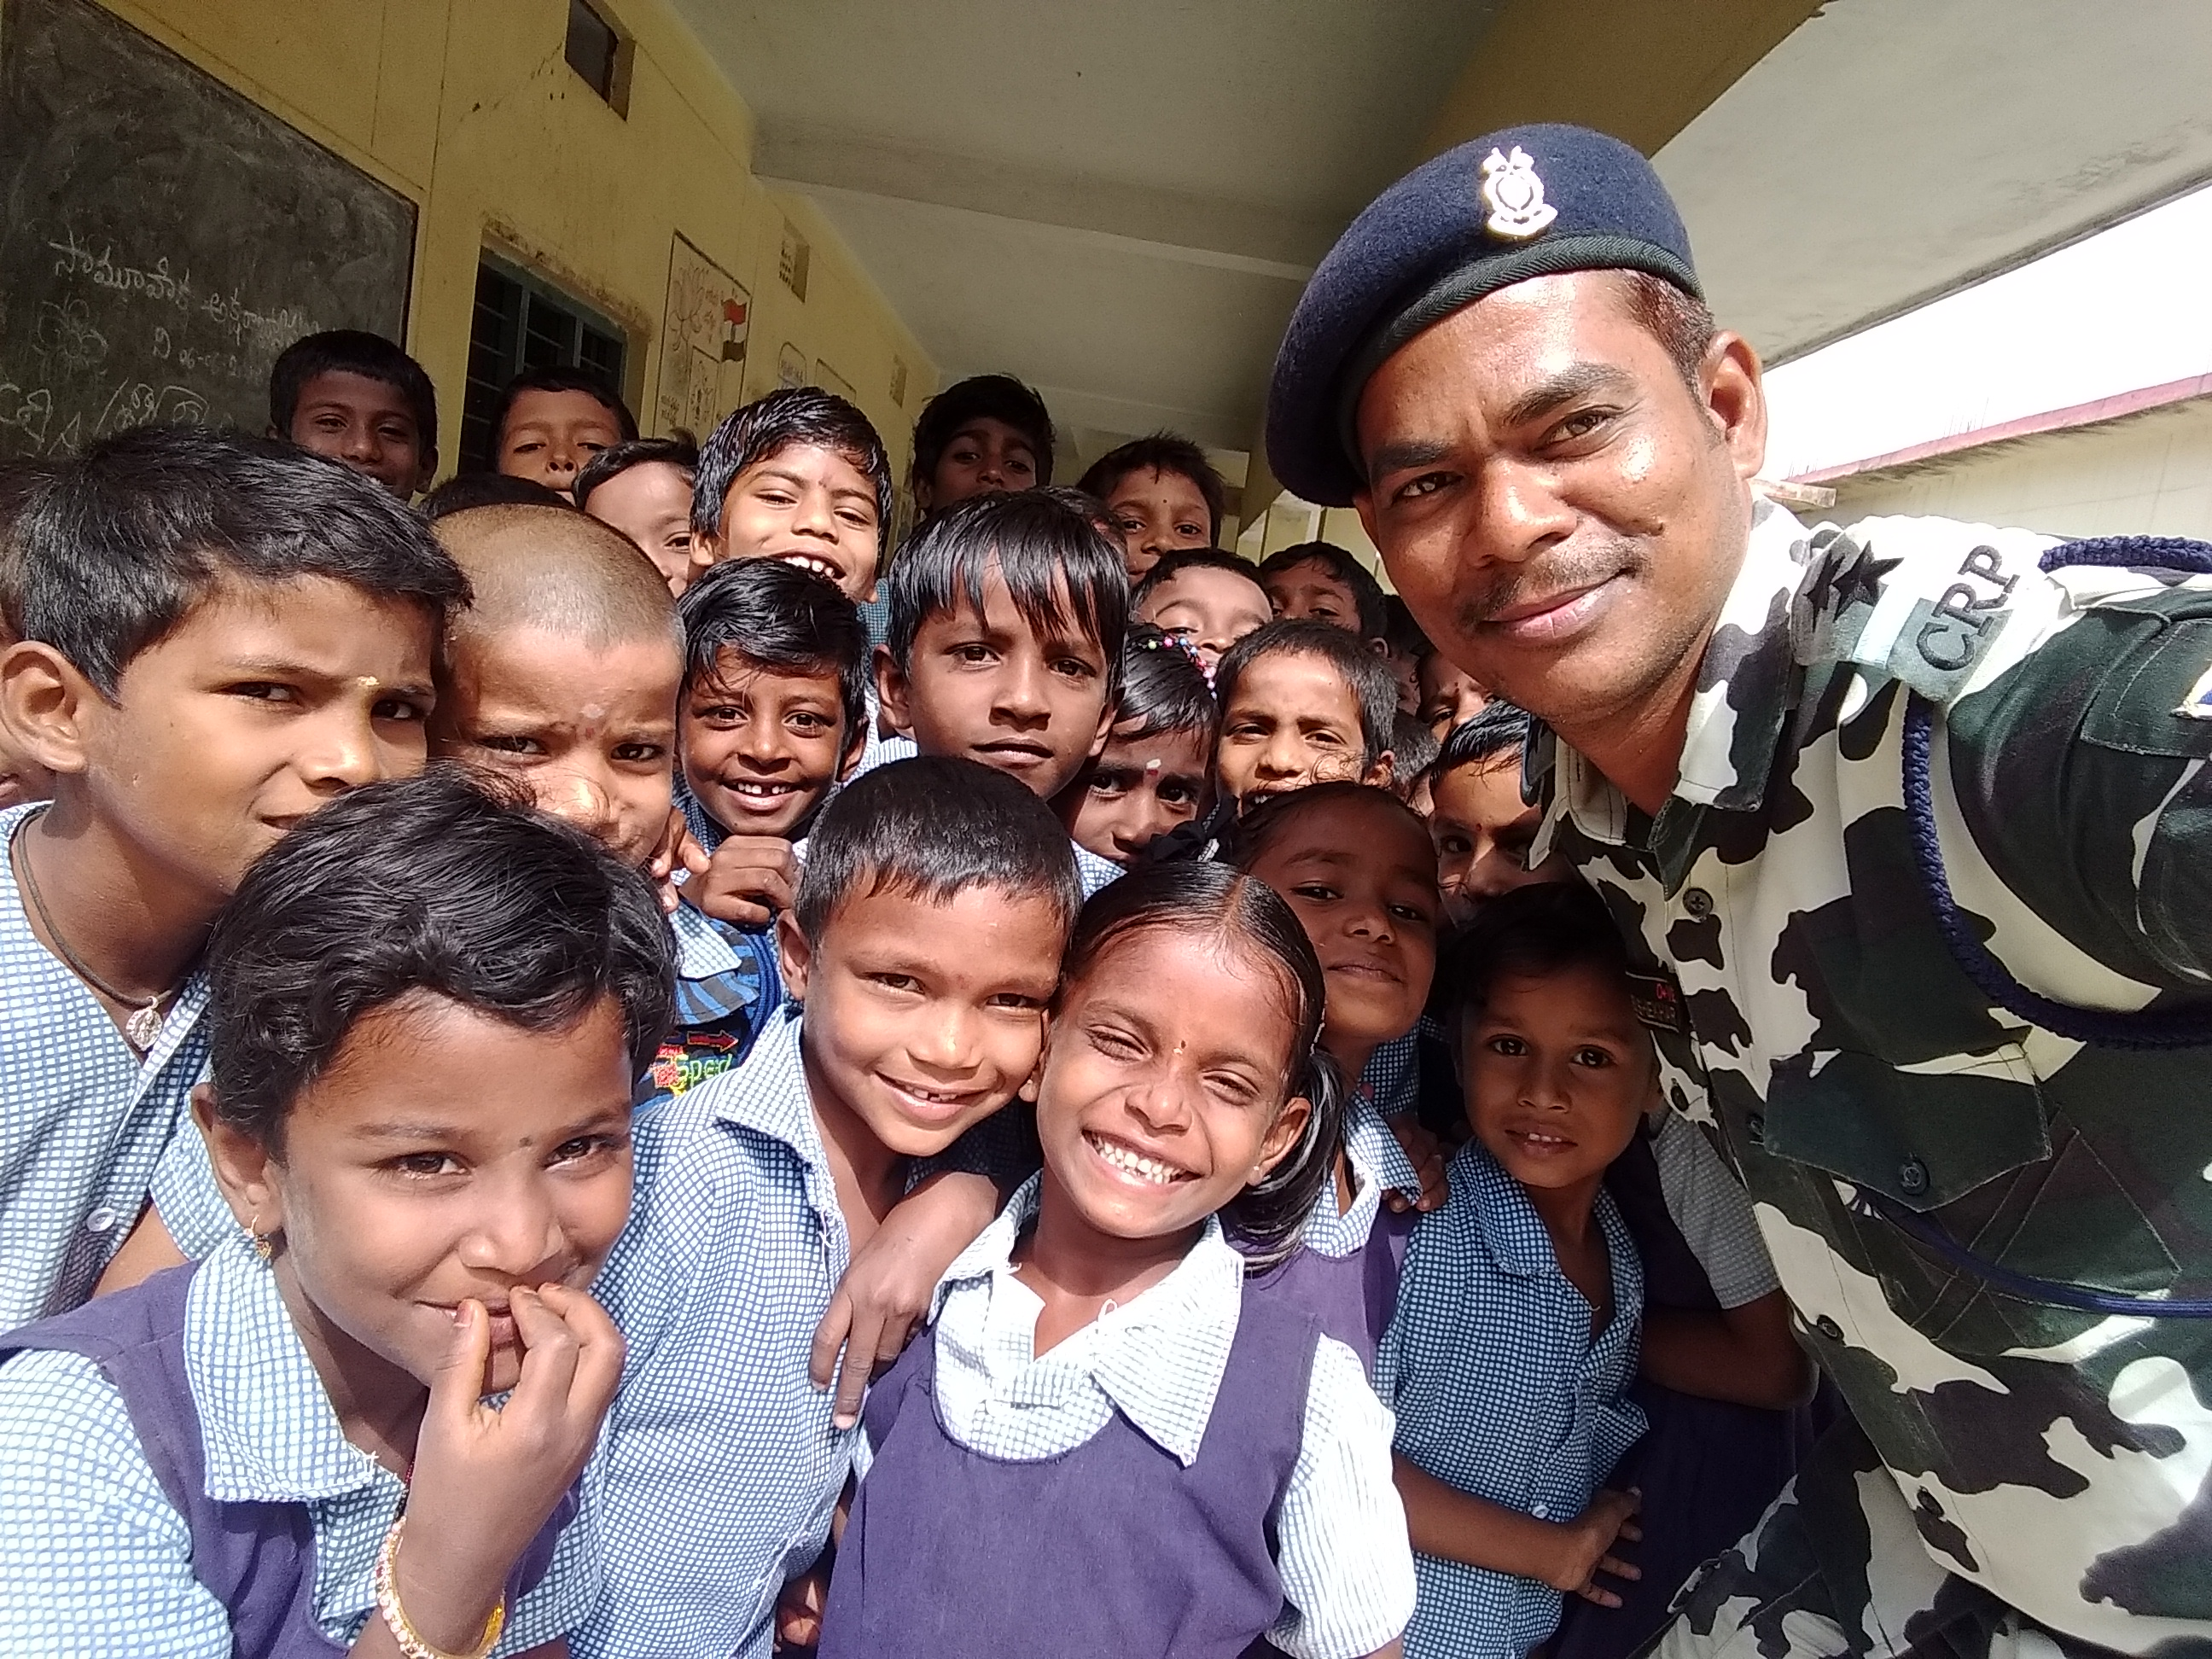 A Soldier fighting for malnutrition problems in school children